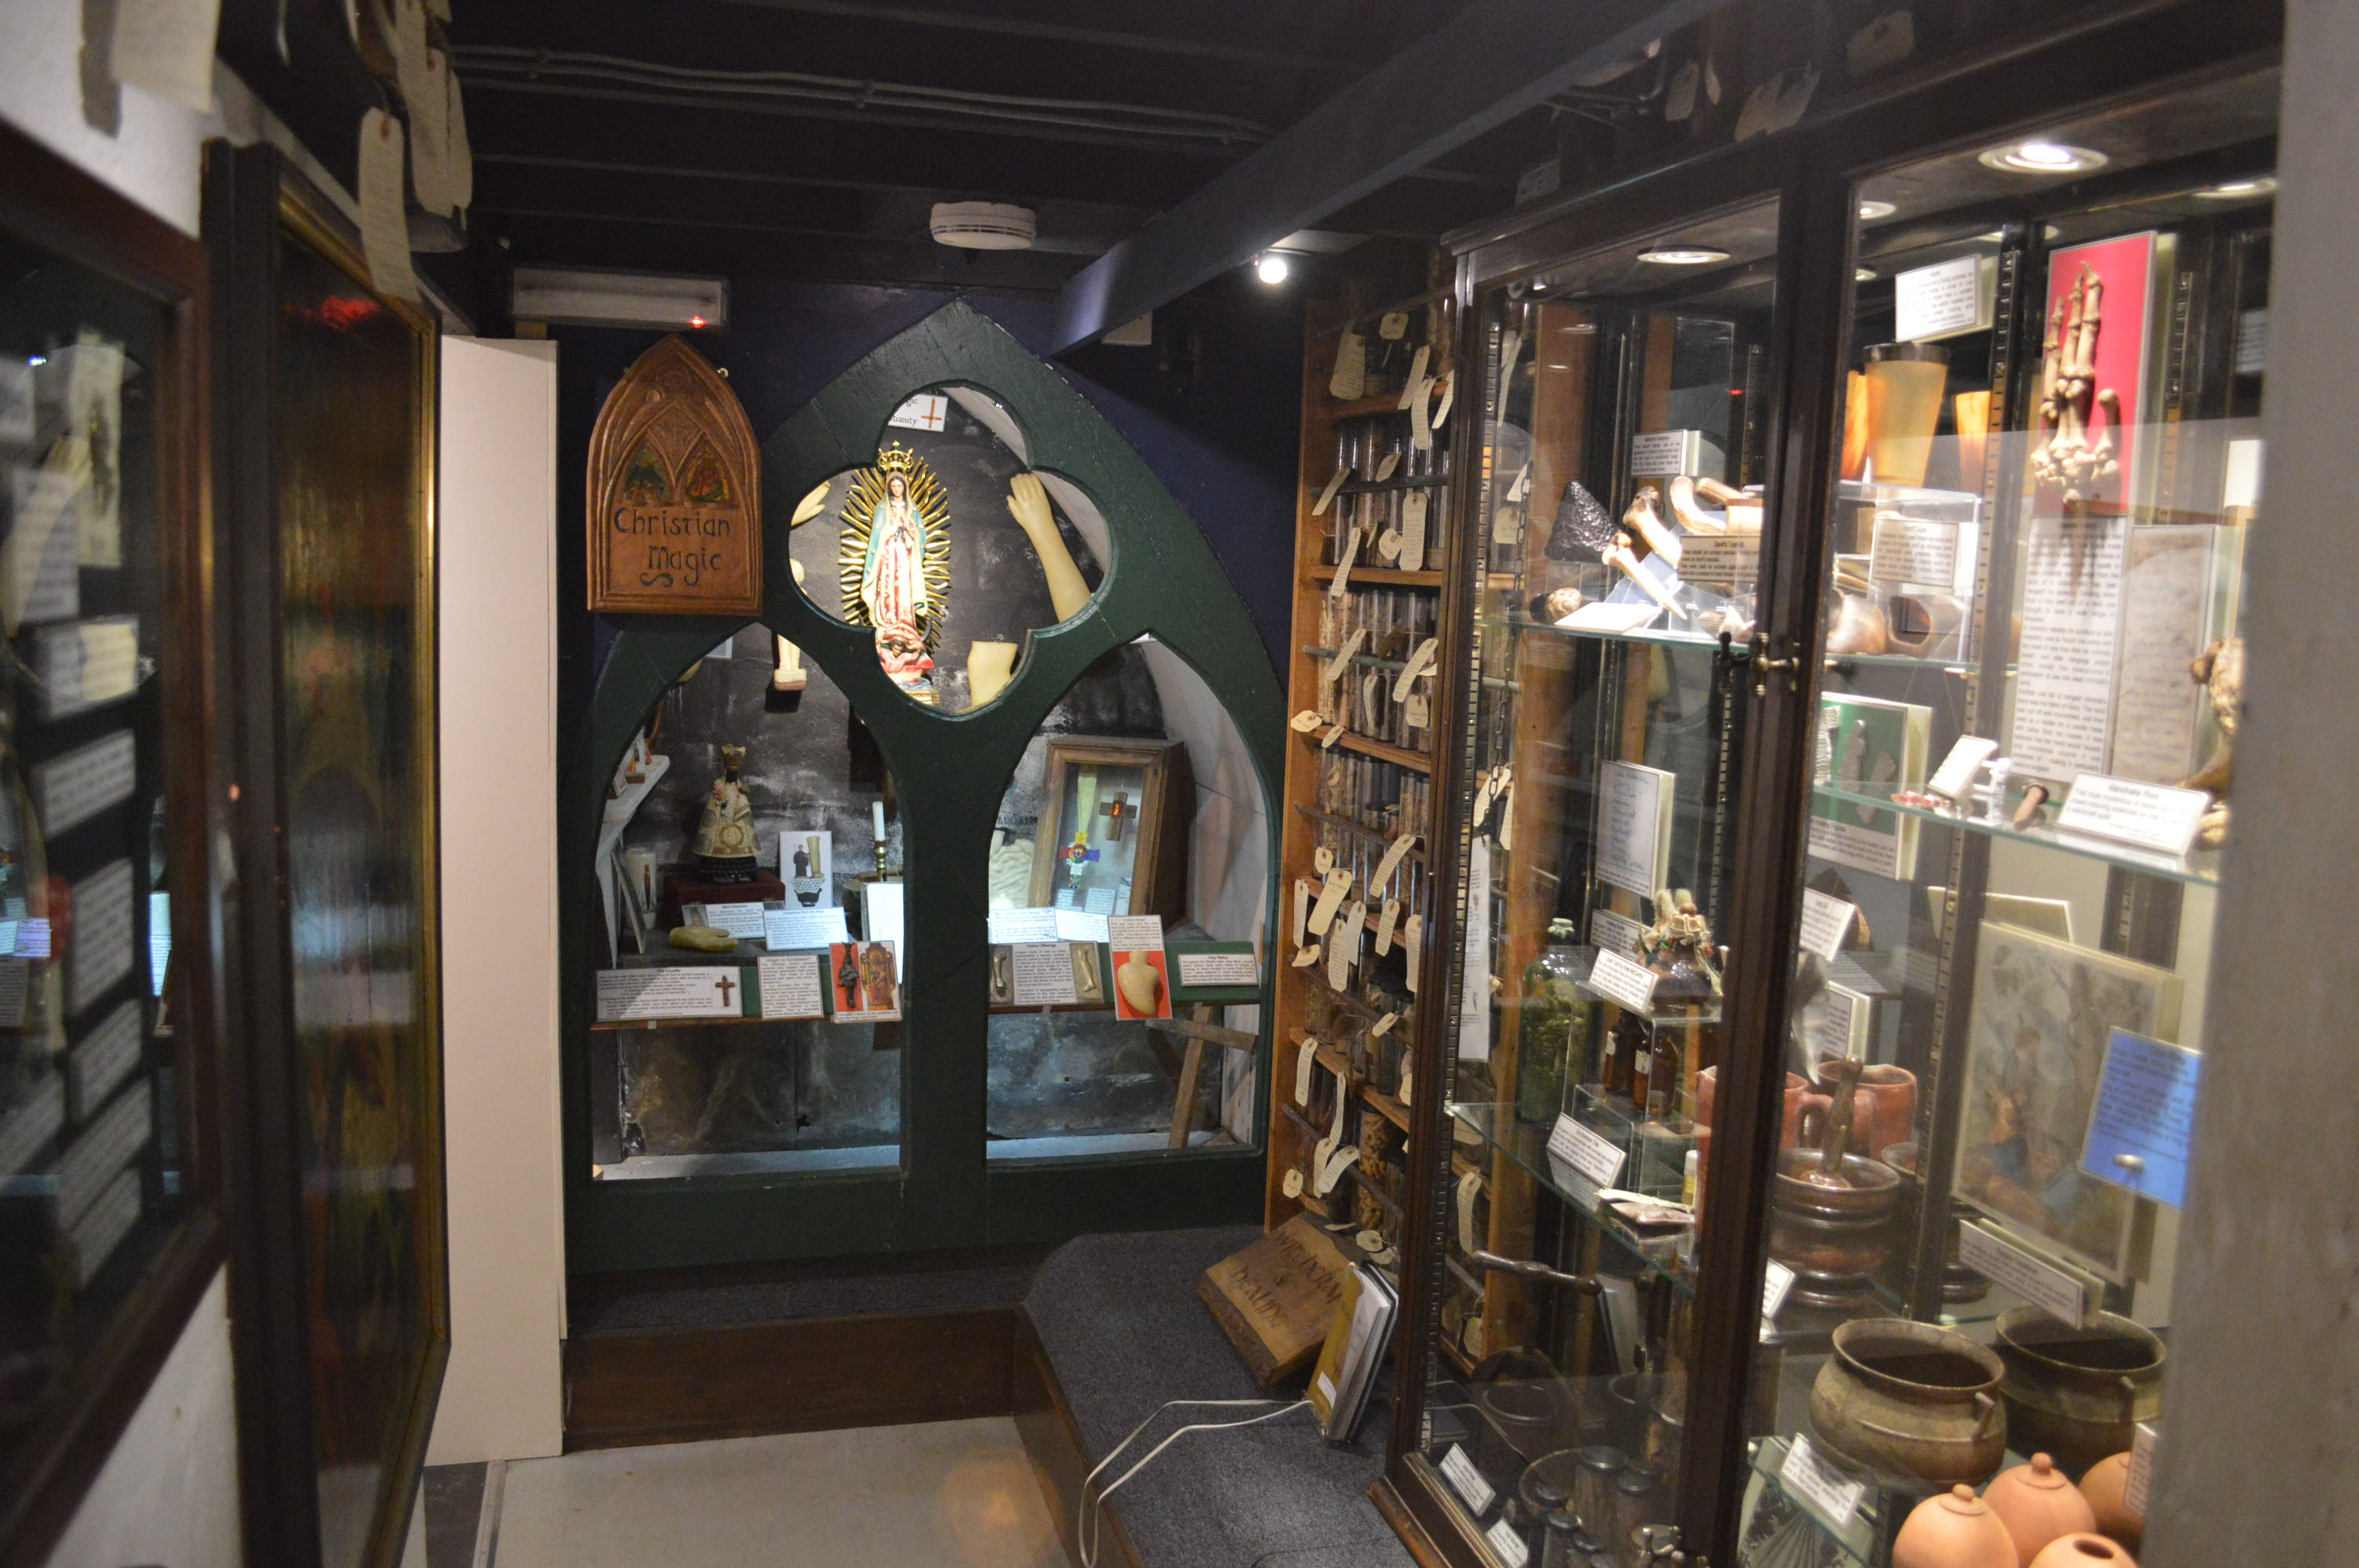 Boscastle S Museum Of Witchcraft And Magic